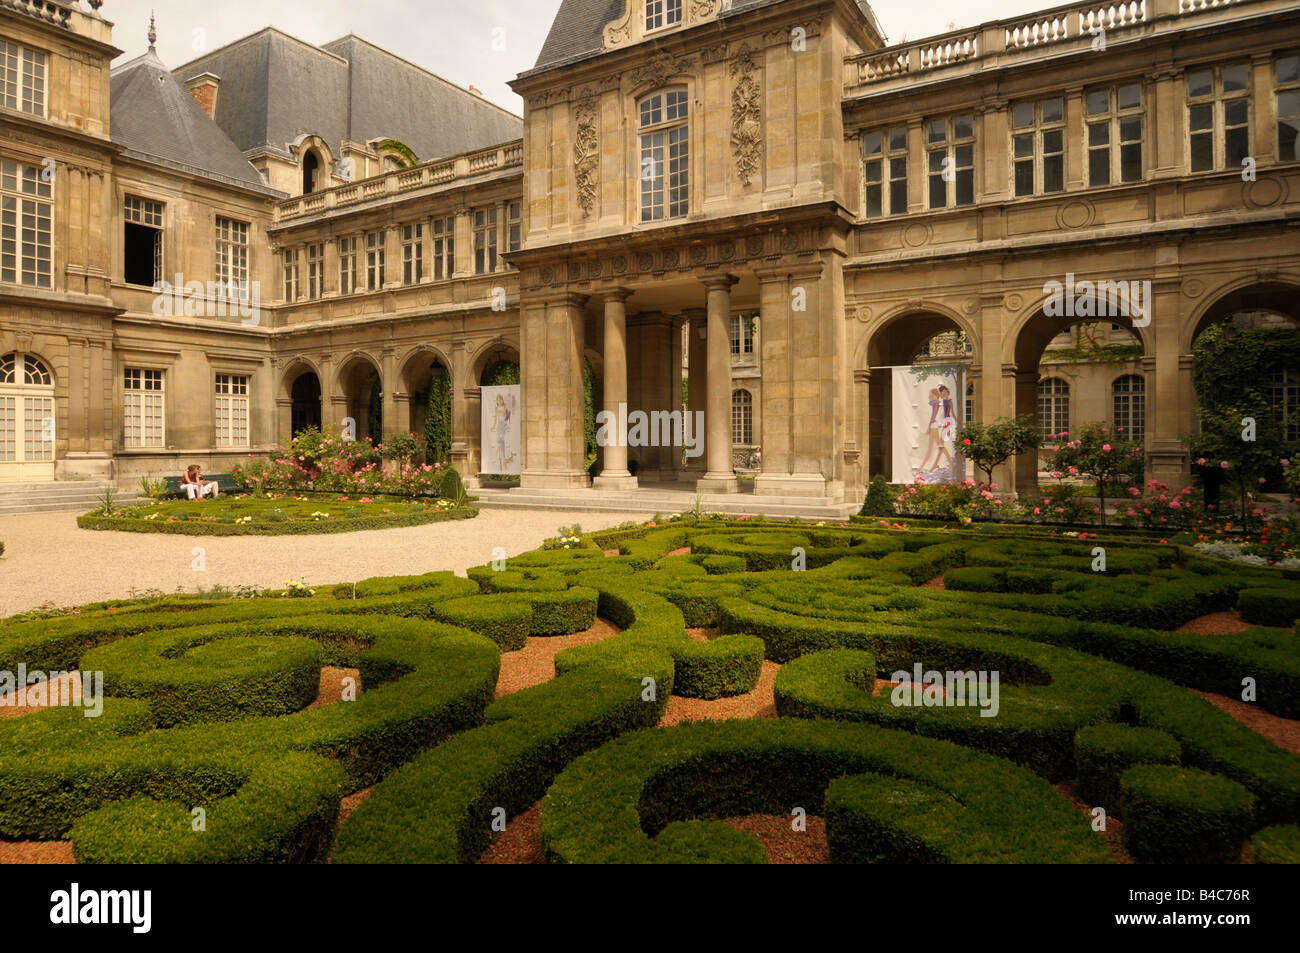 courtyard and garden at Musée Carnavalet in Paris France - Stock Image